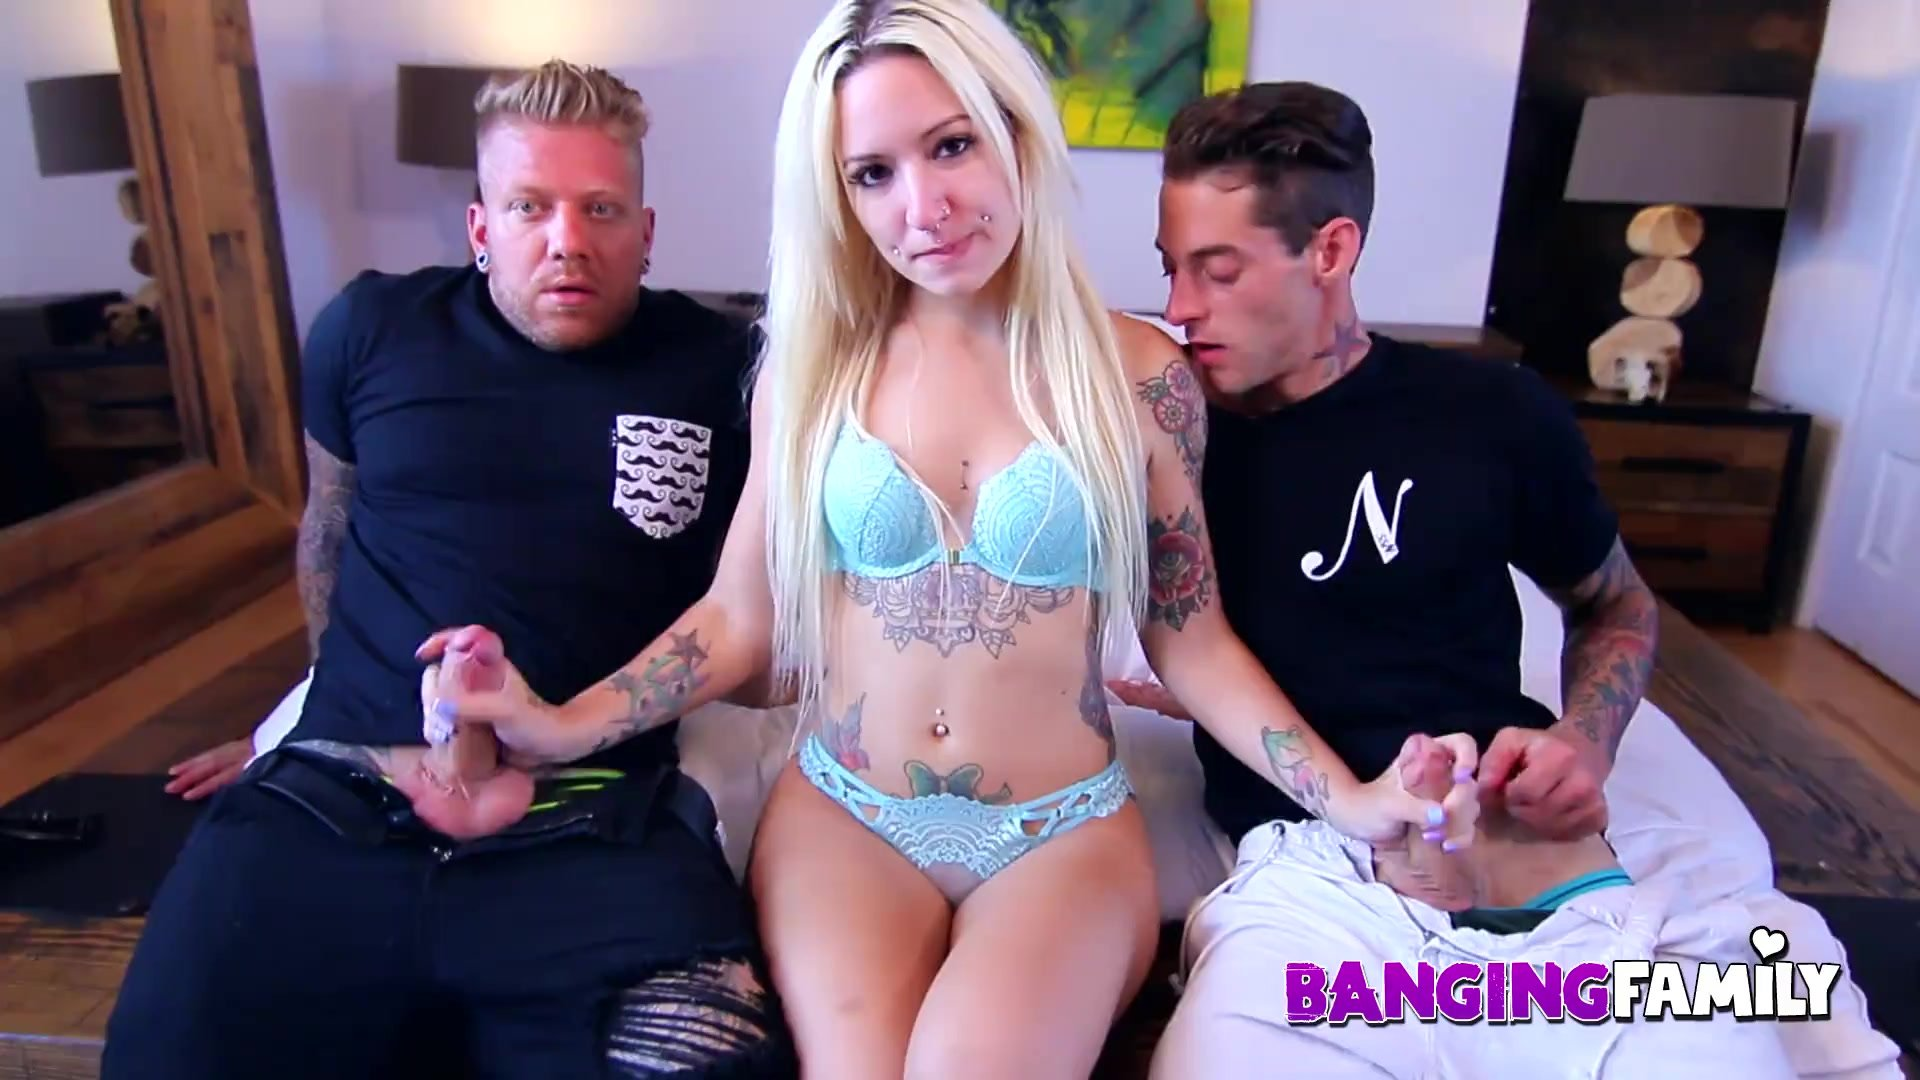 Banging Family - Petite Inked Step-Sis Banged Up The Butt